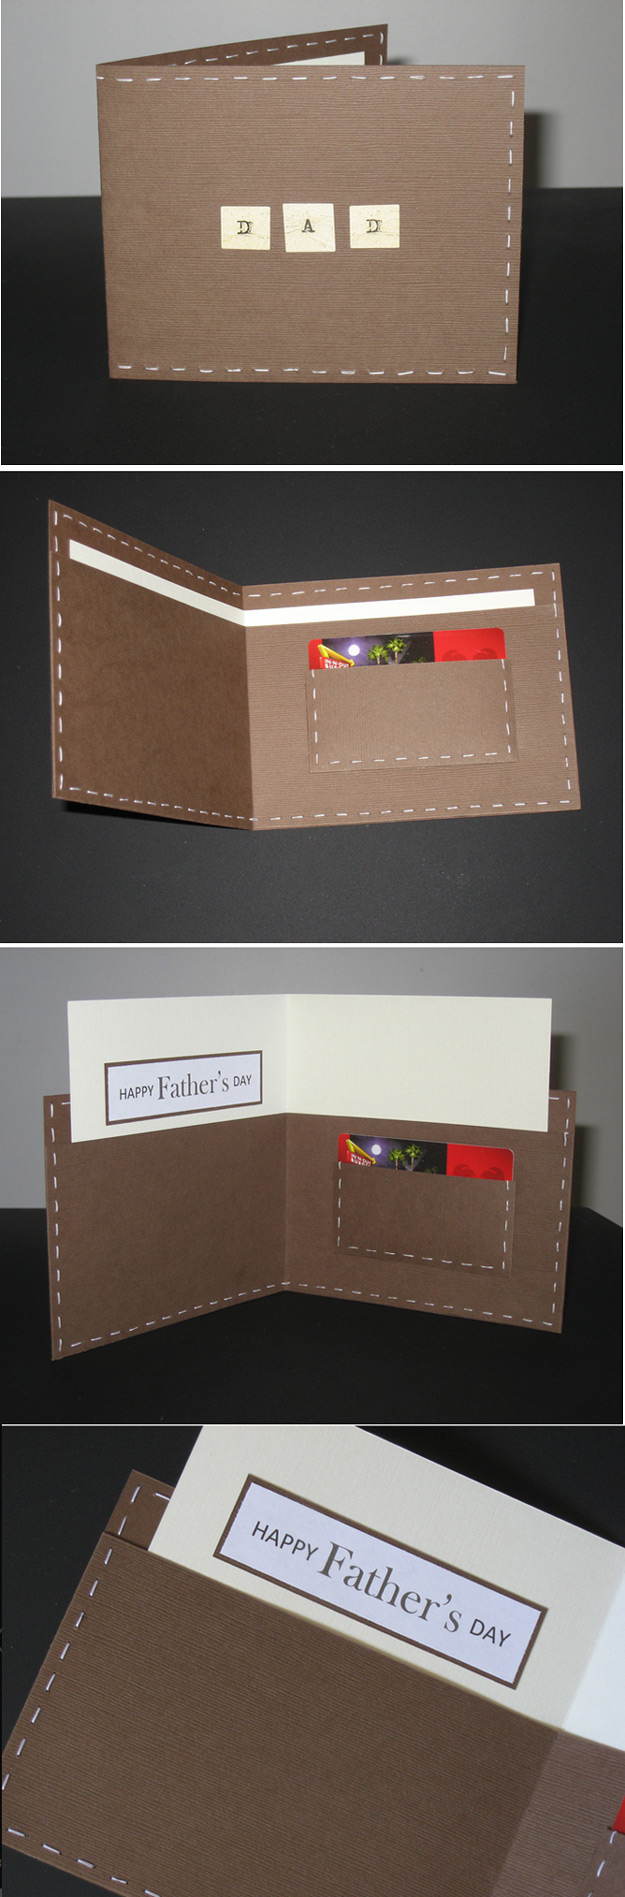 21-DIY-Fathers-Day-Cards-Wallet-Card.jpg